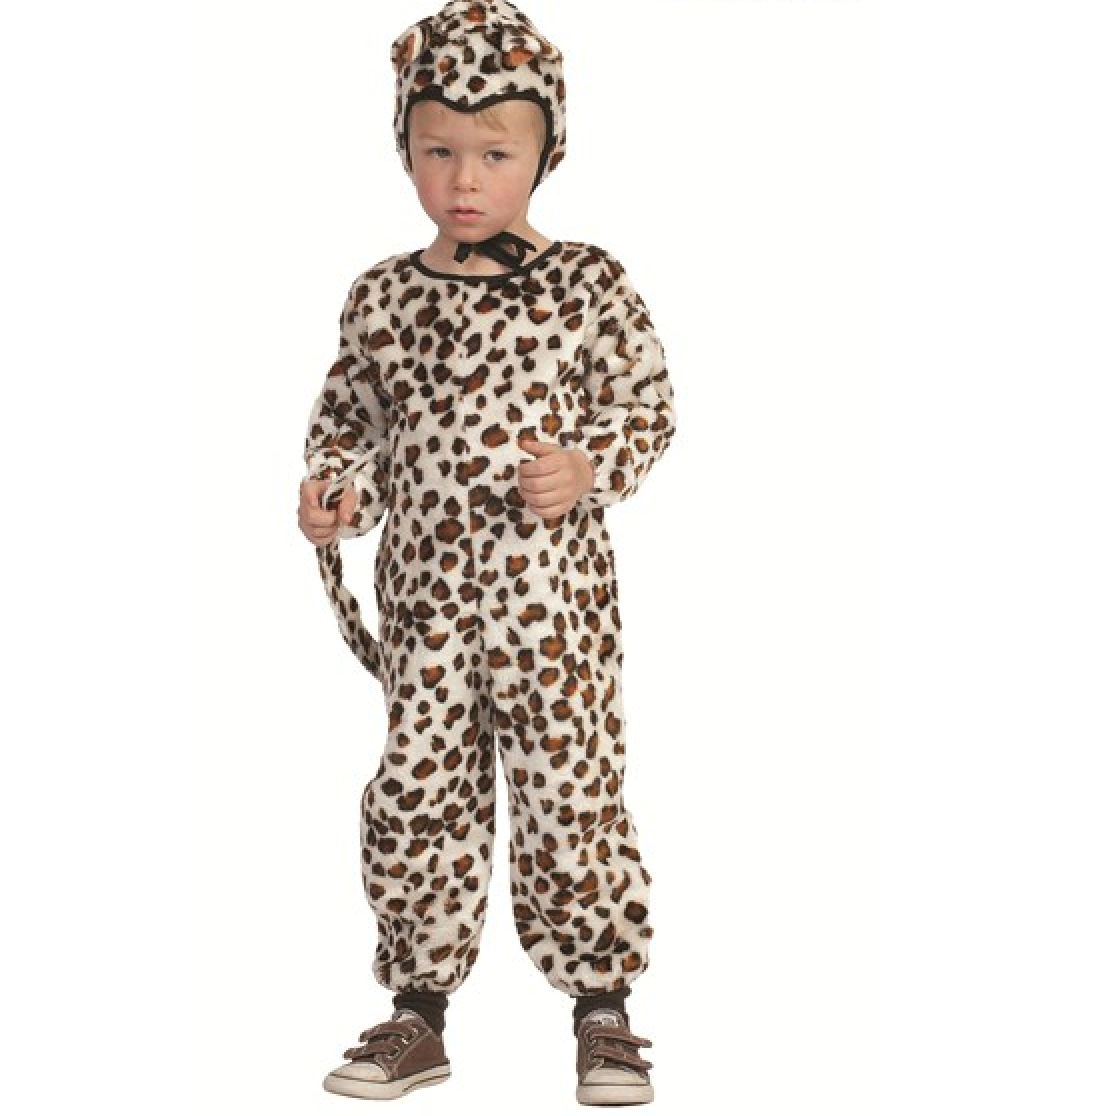 Plush Leopard Jumpsuit Child Halloween Costume